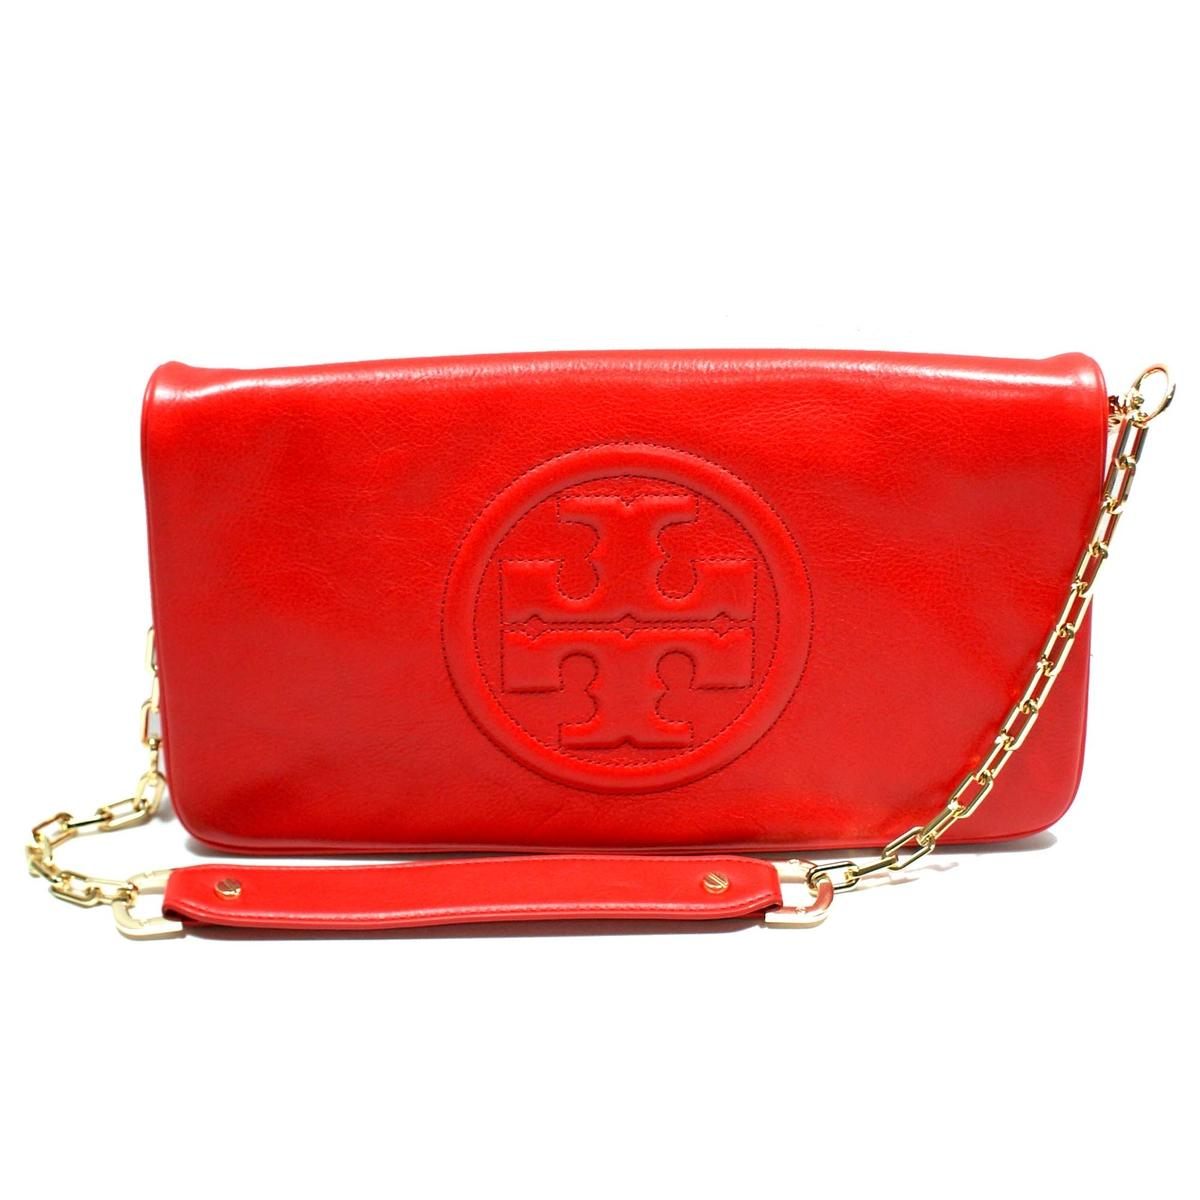 Tory Burch Red Leather Bombe Reva Clutch Shoulder